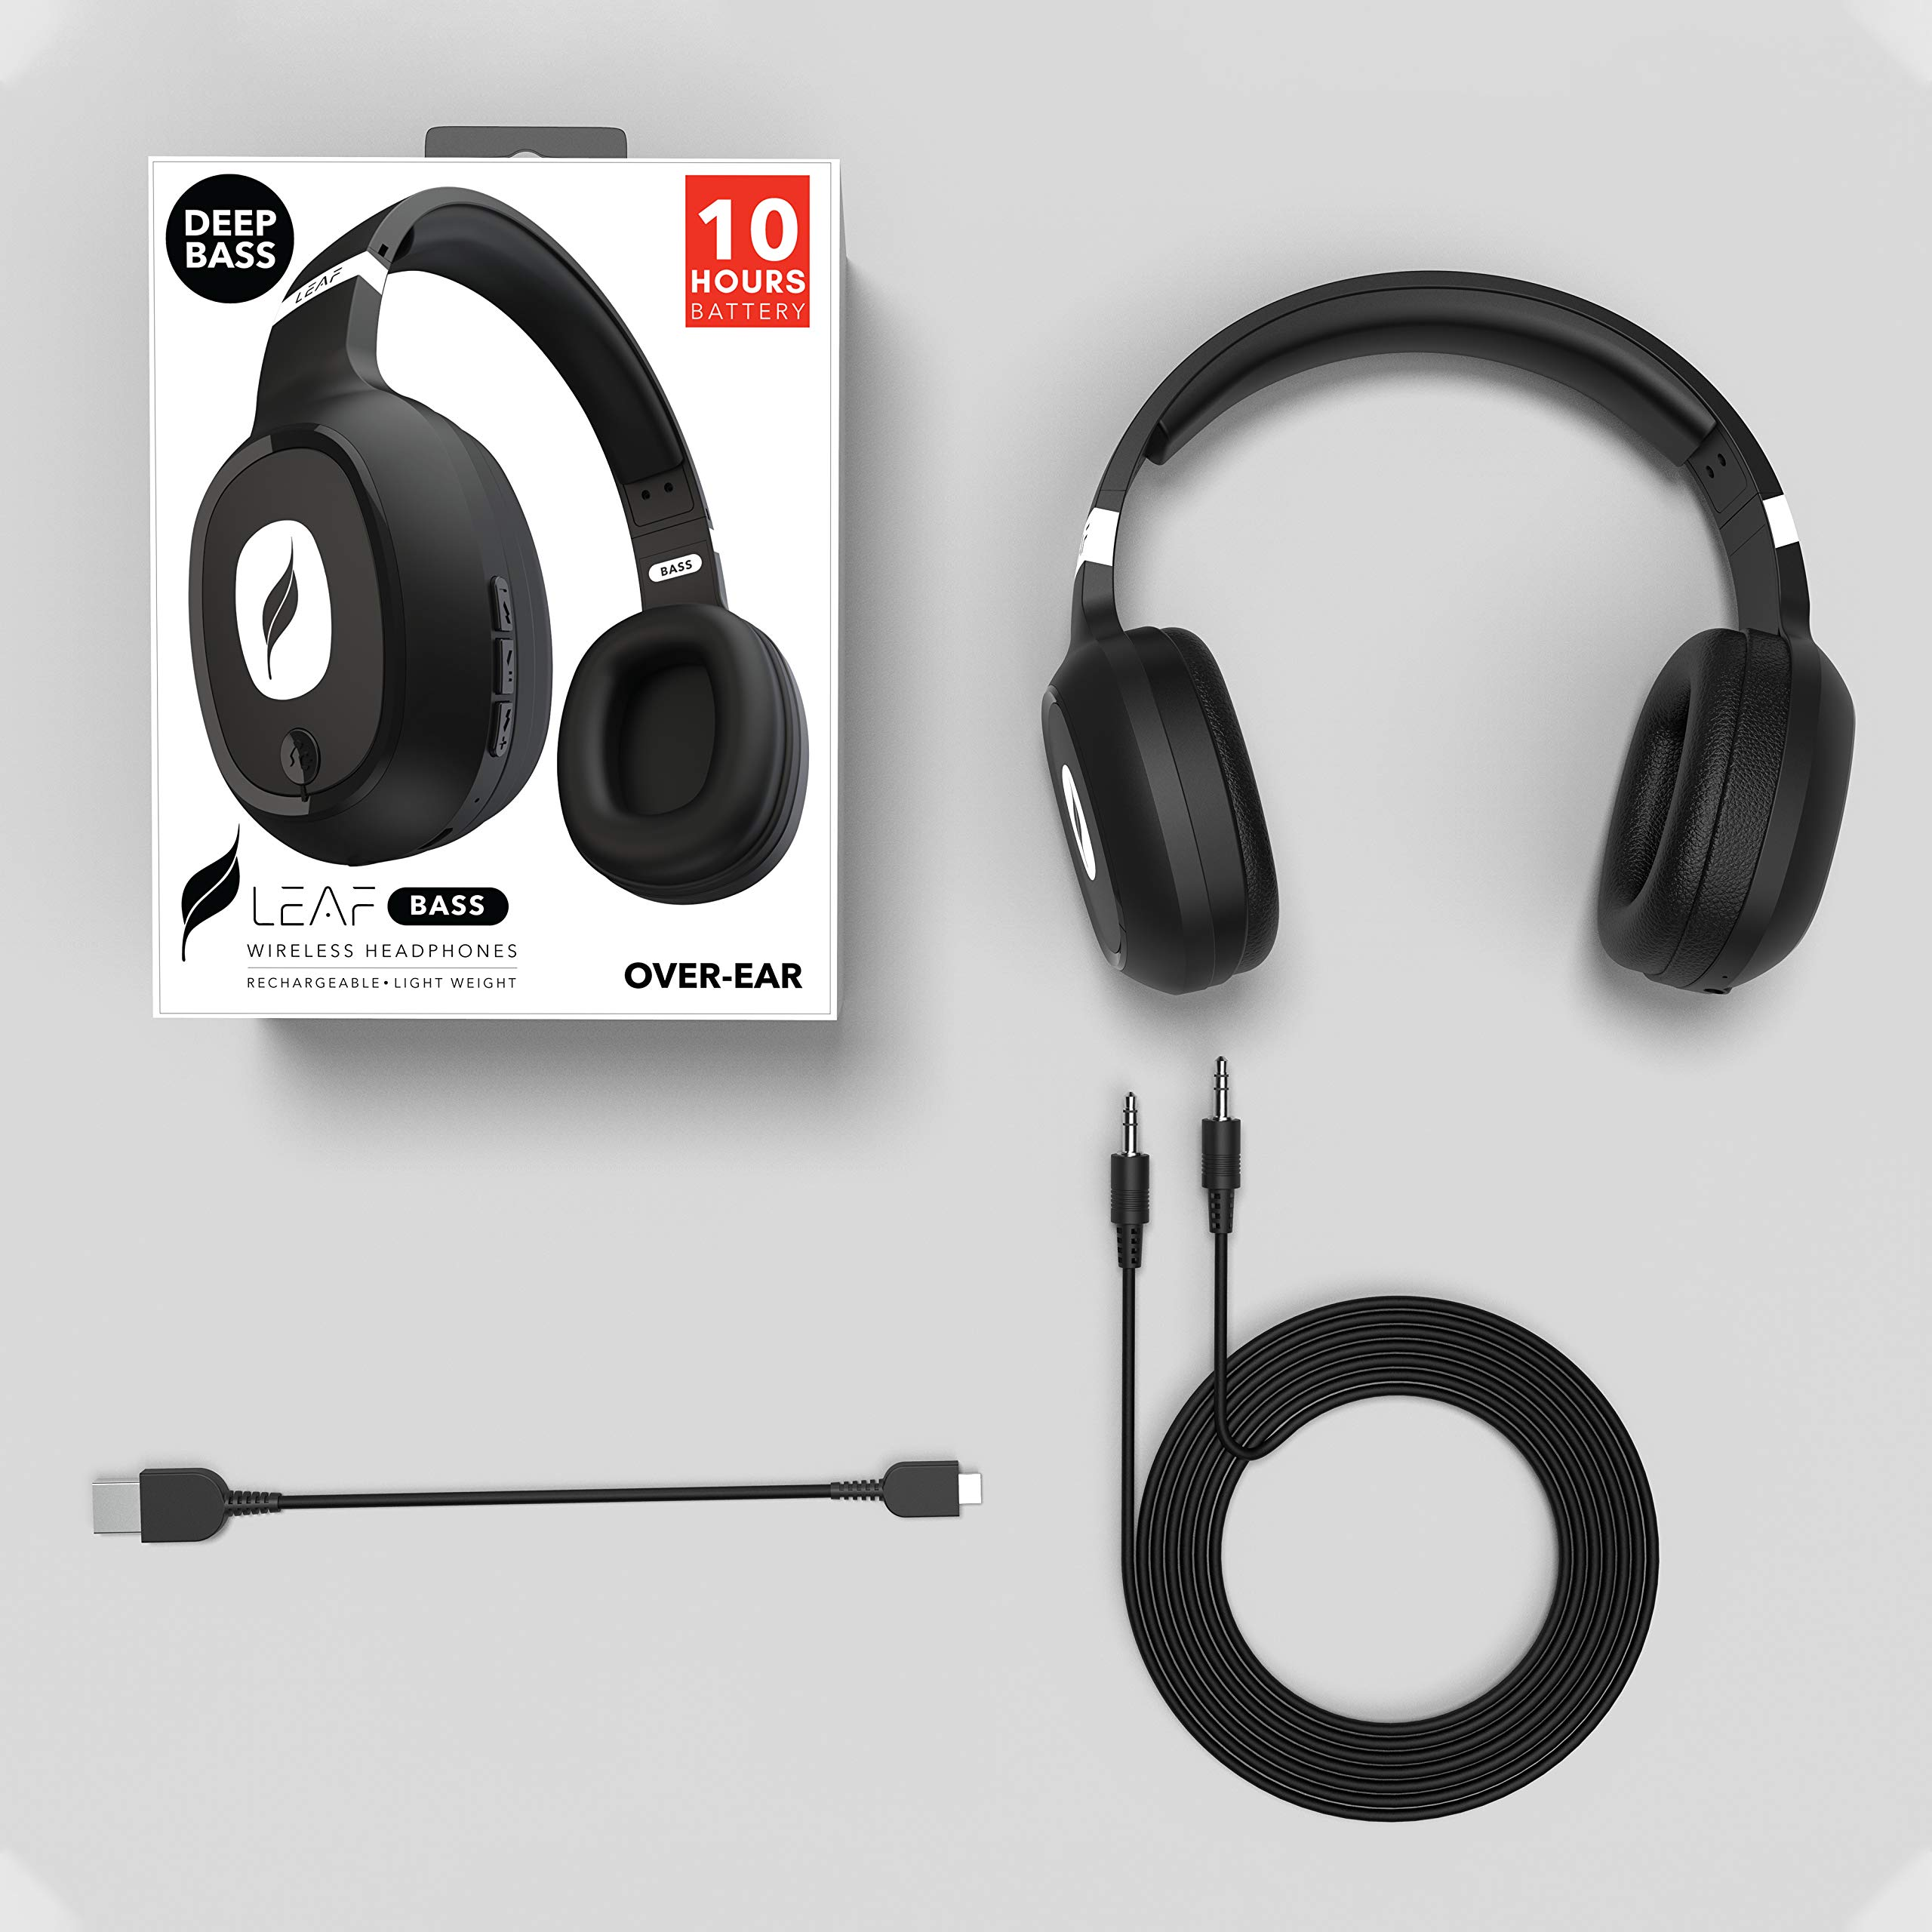 Motorola Escape 210 Over Ear Bluetooth Headphones With Alexa Black Buy Online In Bahamas Motorola Products In Bahamas See Prices Reviews And Free Delivery Over Bsd80 Desertcart